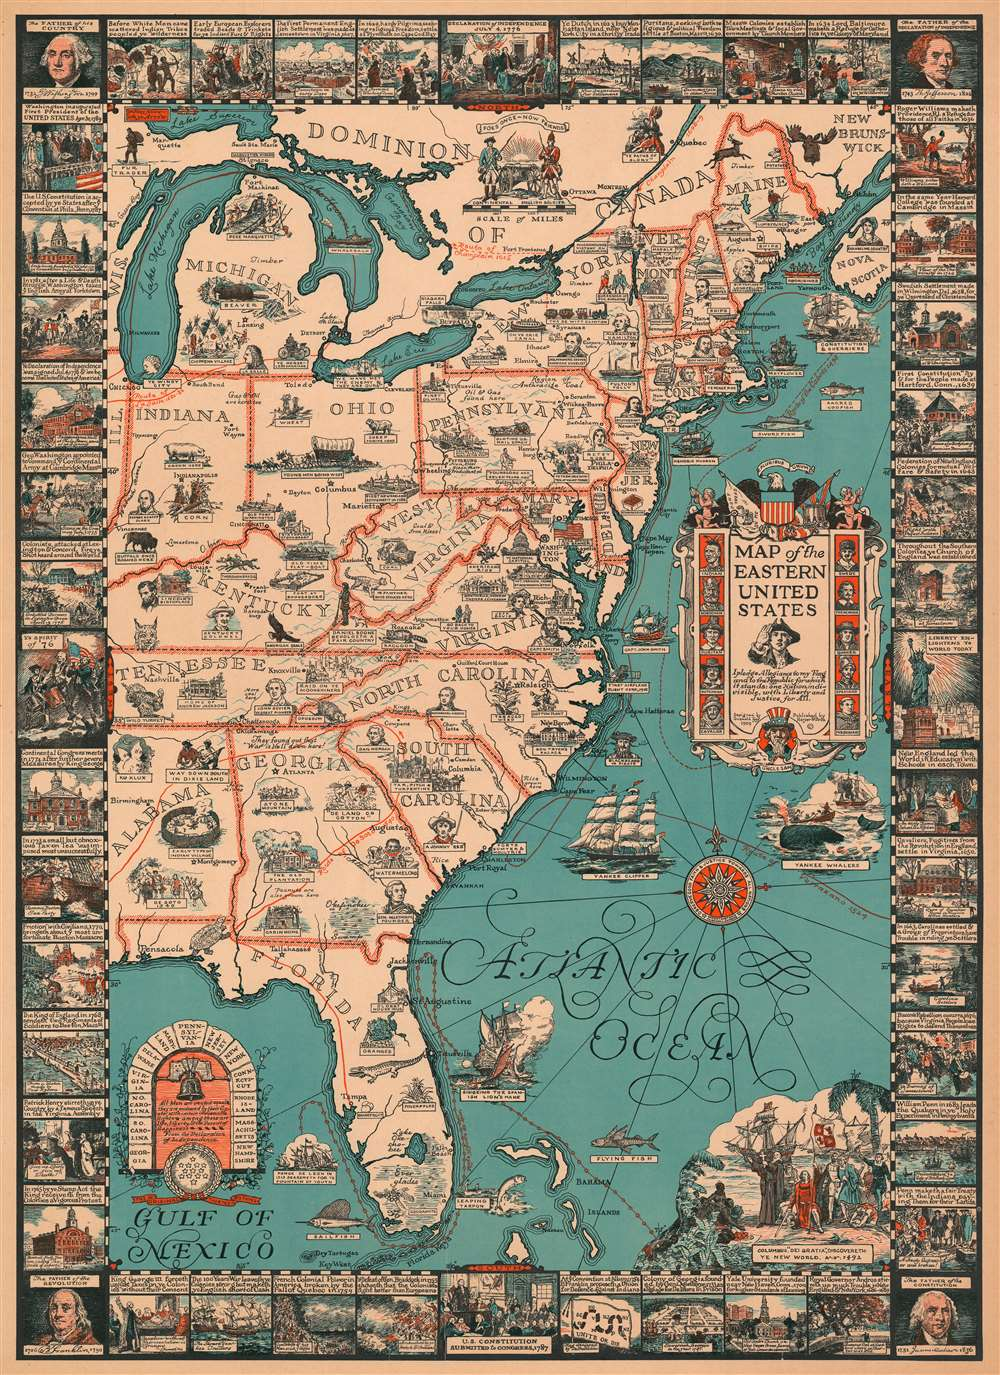 1929 Tyng Pictorial Map of the Eastern United States